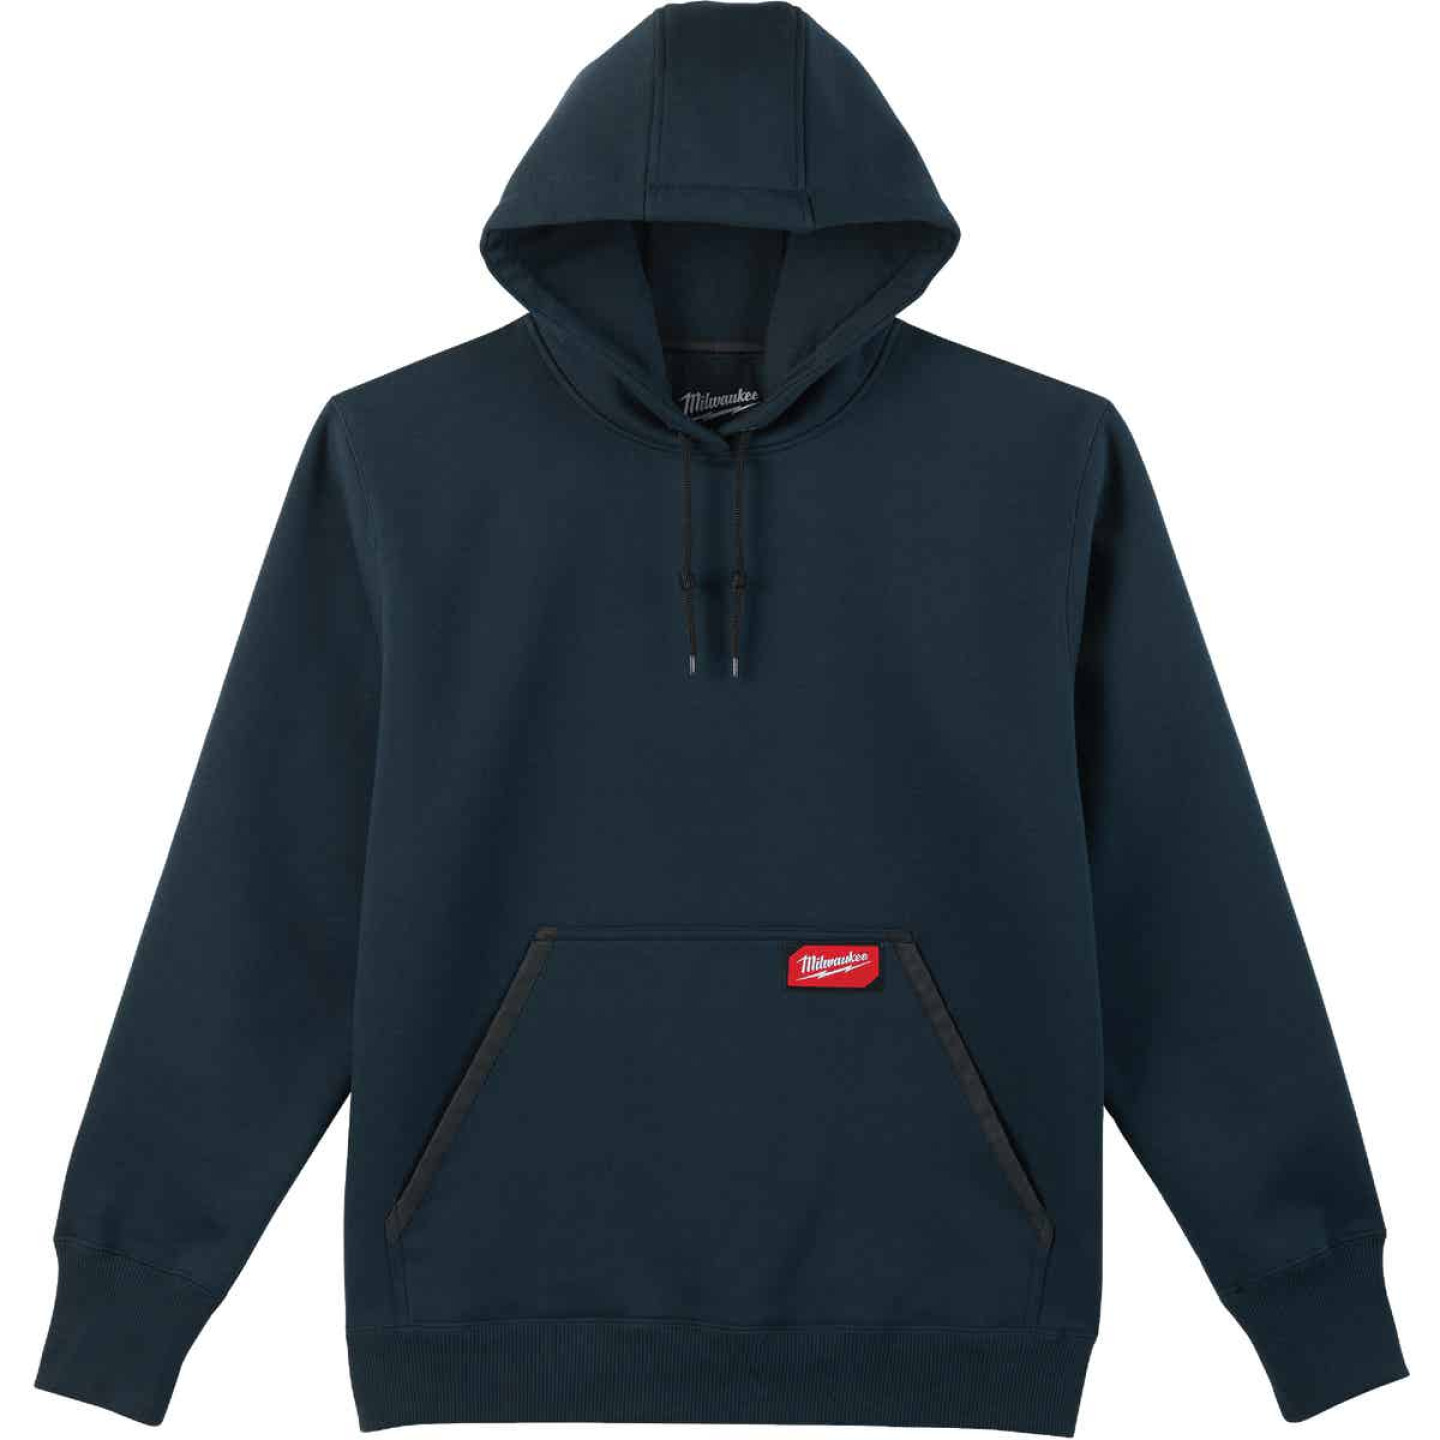 Milwaukee Small Navy Blue Heavy-Duty Pullover Hooded Sweatshirt Image 1